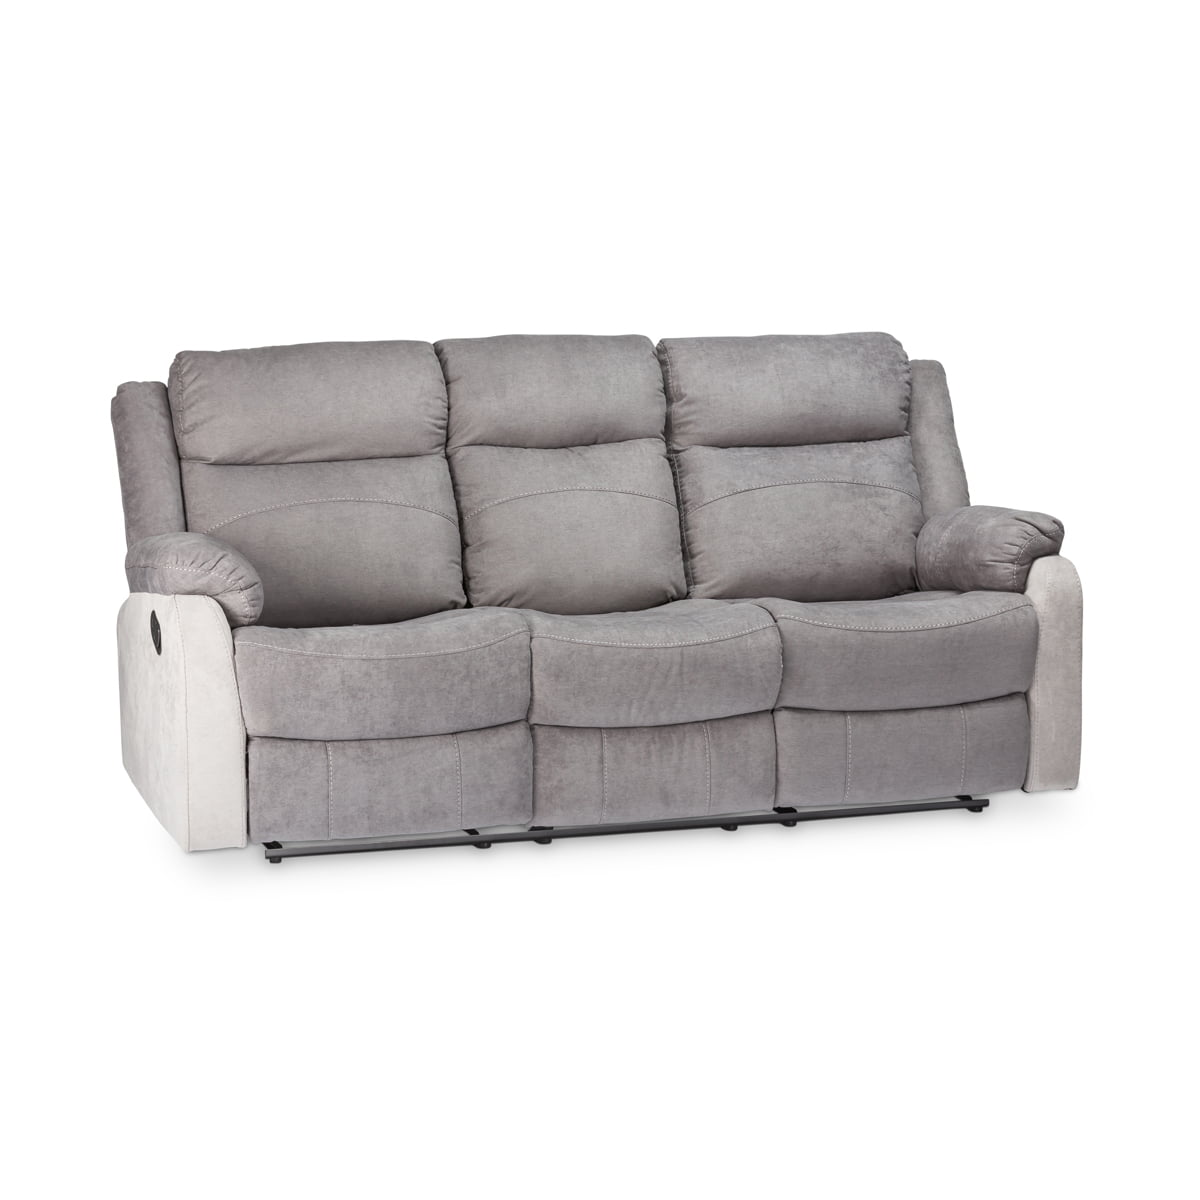 Elijah Two-Tone 3 Seater Recliner